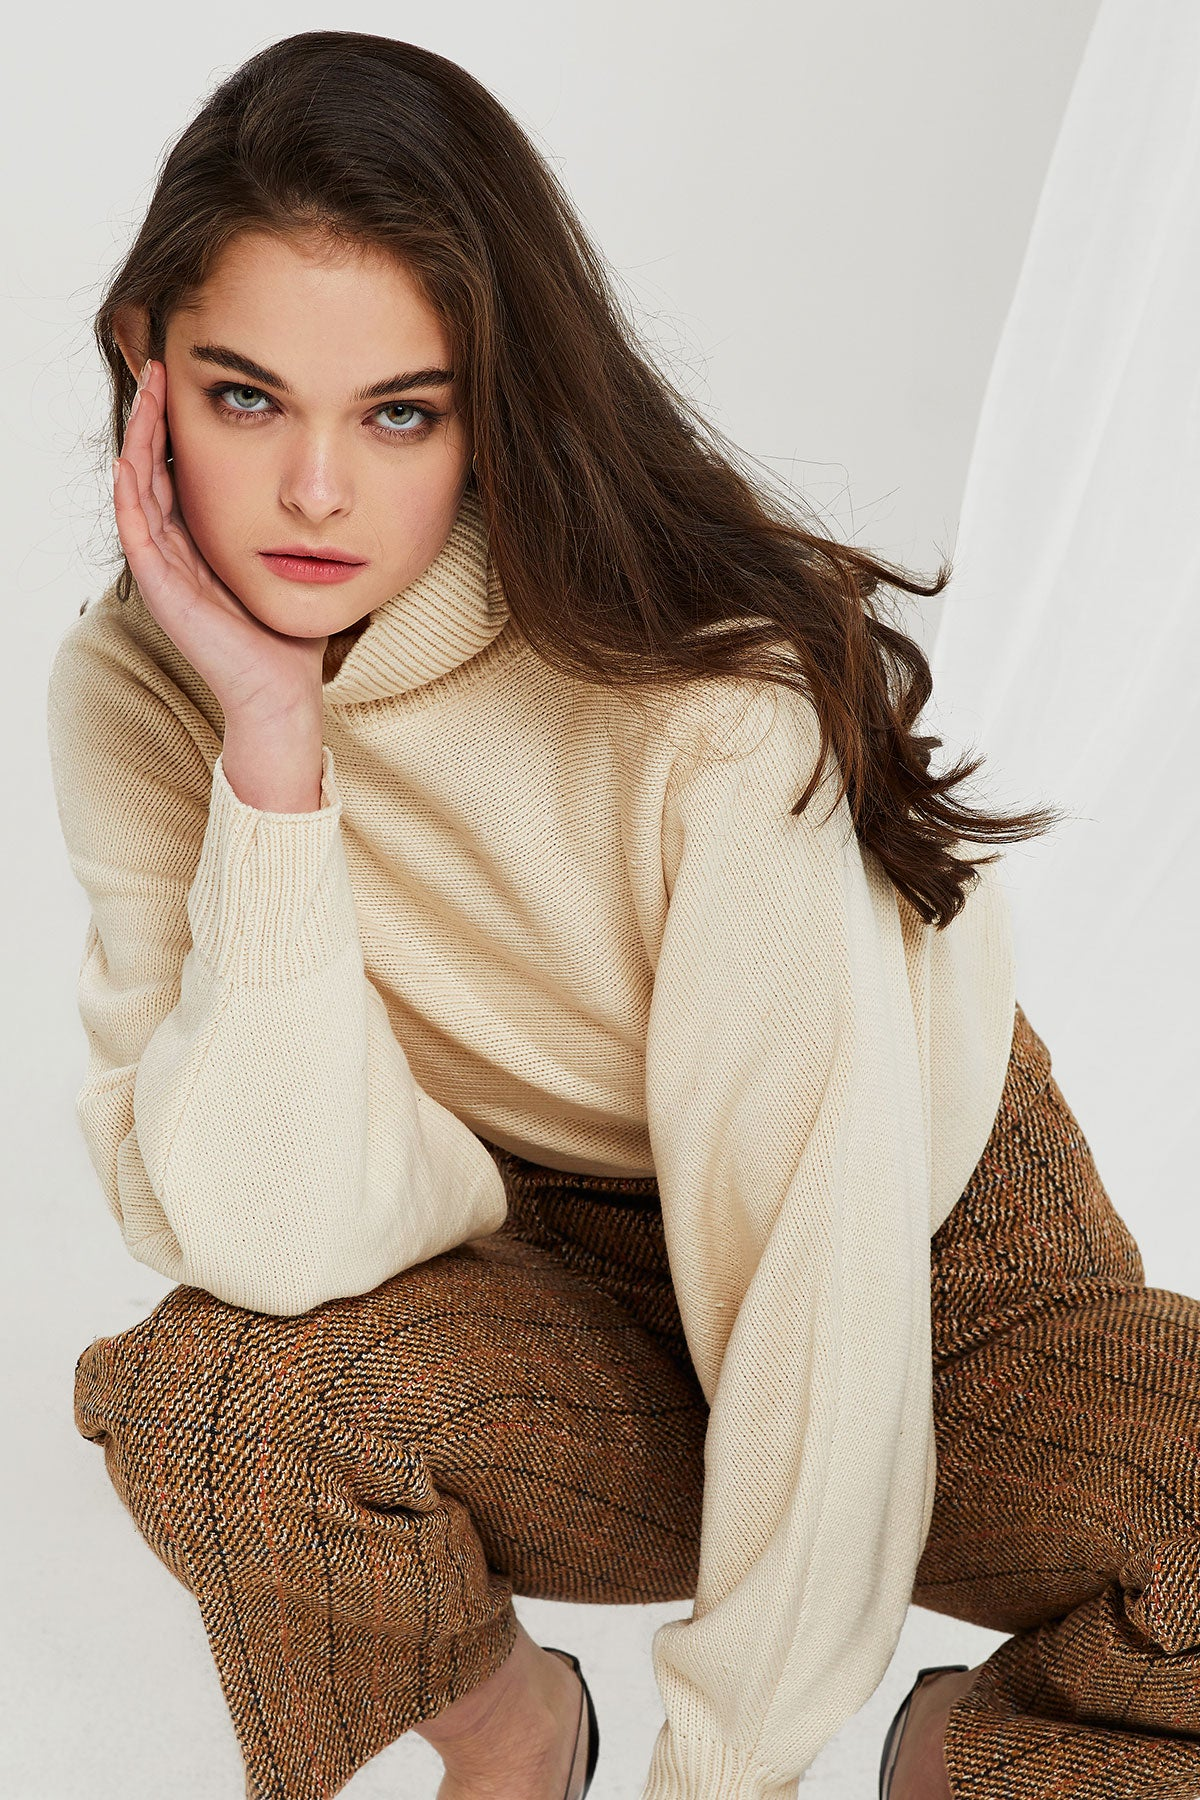 Olga Turtle Neck Crop Sweater